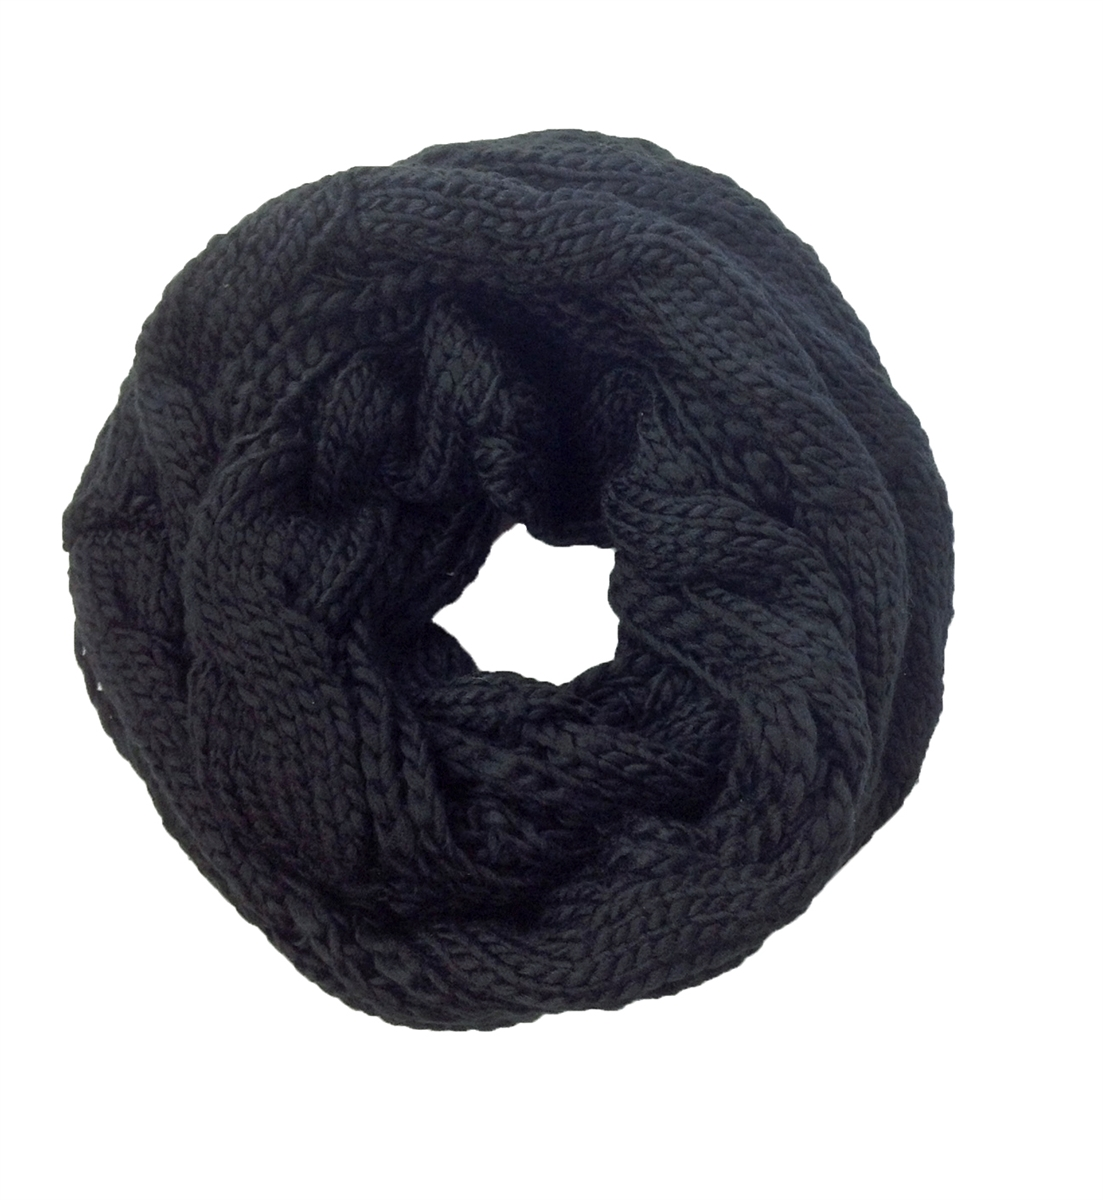 Cable Knit Infinity Scarf Knitting Pattern : Cambridge Classic Cable Knit Infinity Scarf, Black